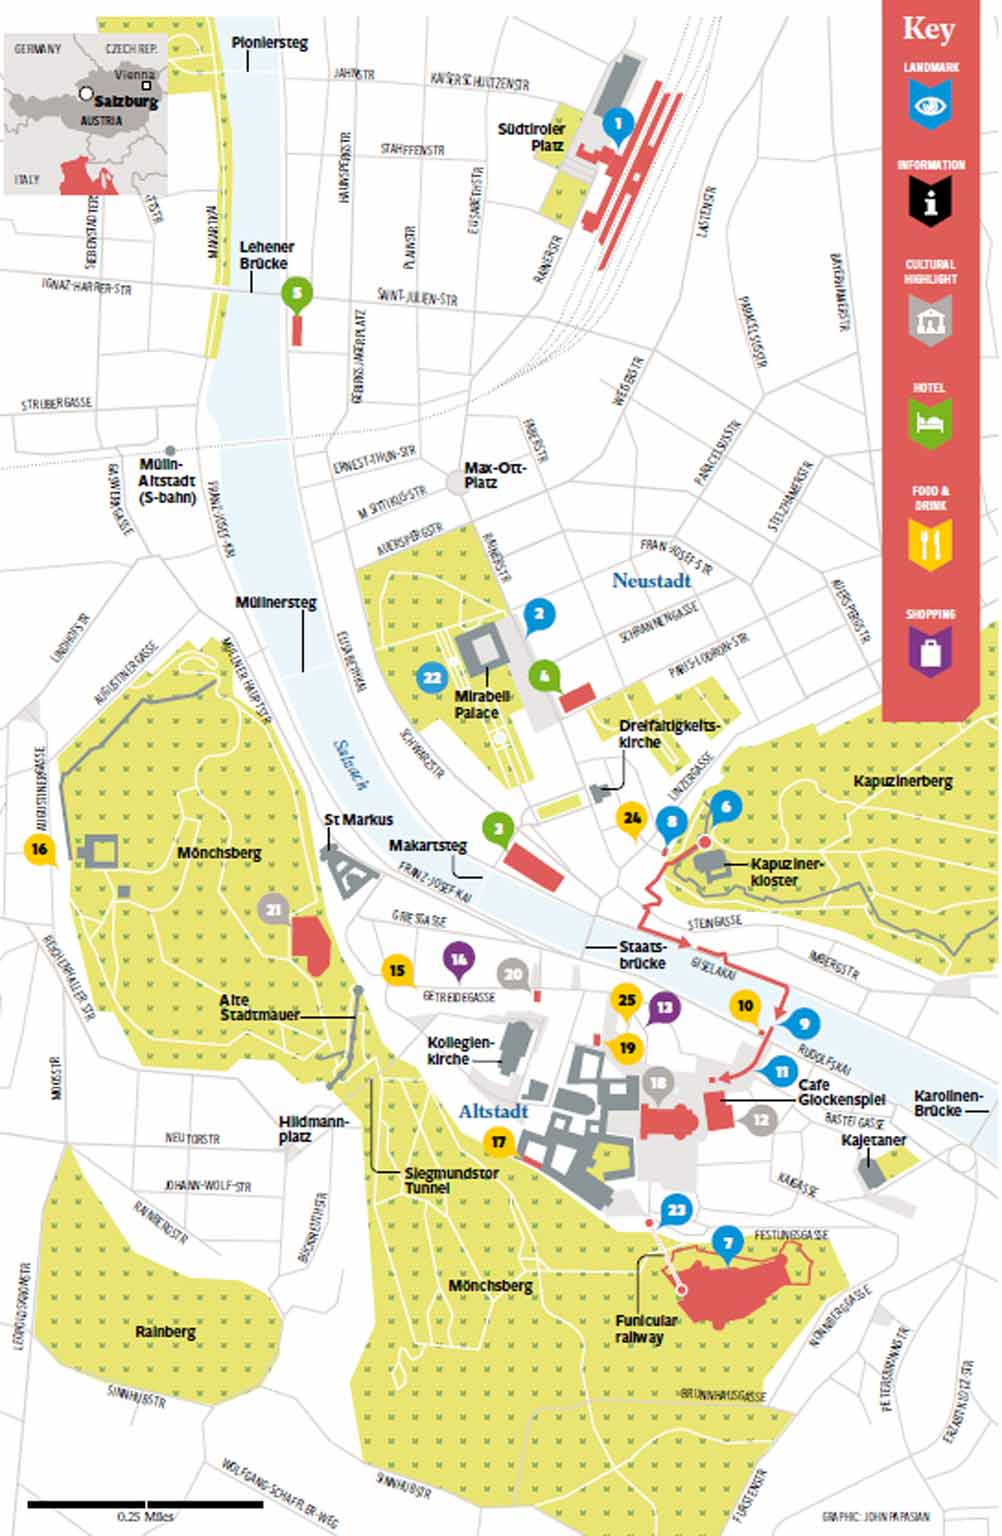 Salzburg travel tips: Where to go and what to see in 48 ... on porto bus map, bucharest bus map, santiago bus map, kaiserslautern bus map, wiesbaden bus map, split bus map, mexico city bus map, munich bus map, rothenburg ob der tauber bus map, wien bus map, cuenca bus map, dresden bus map, villach bus map, regensburg bus map, osaka bus map, stuttgart bus map, thessaloniki bus map, caen bus map, vienna bus map, houston bus map,